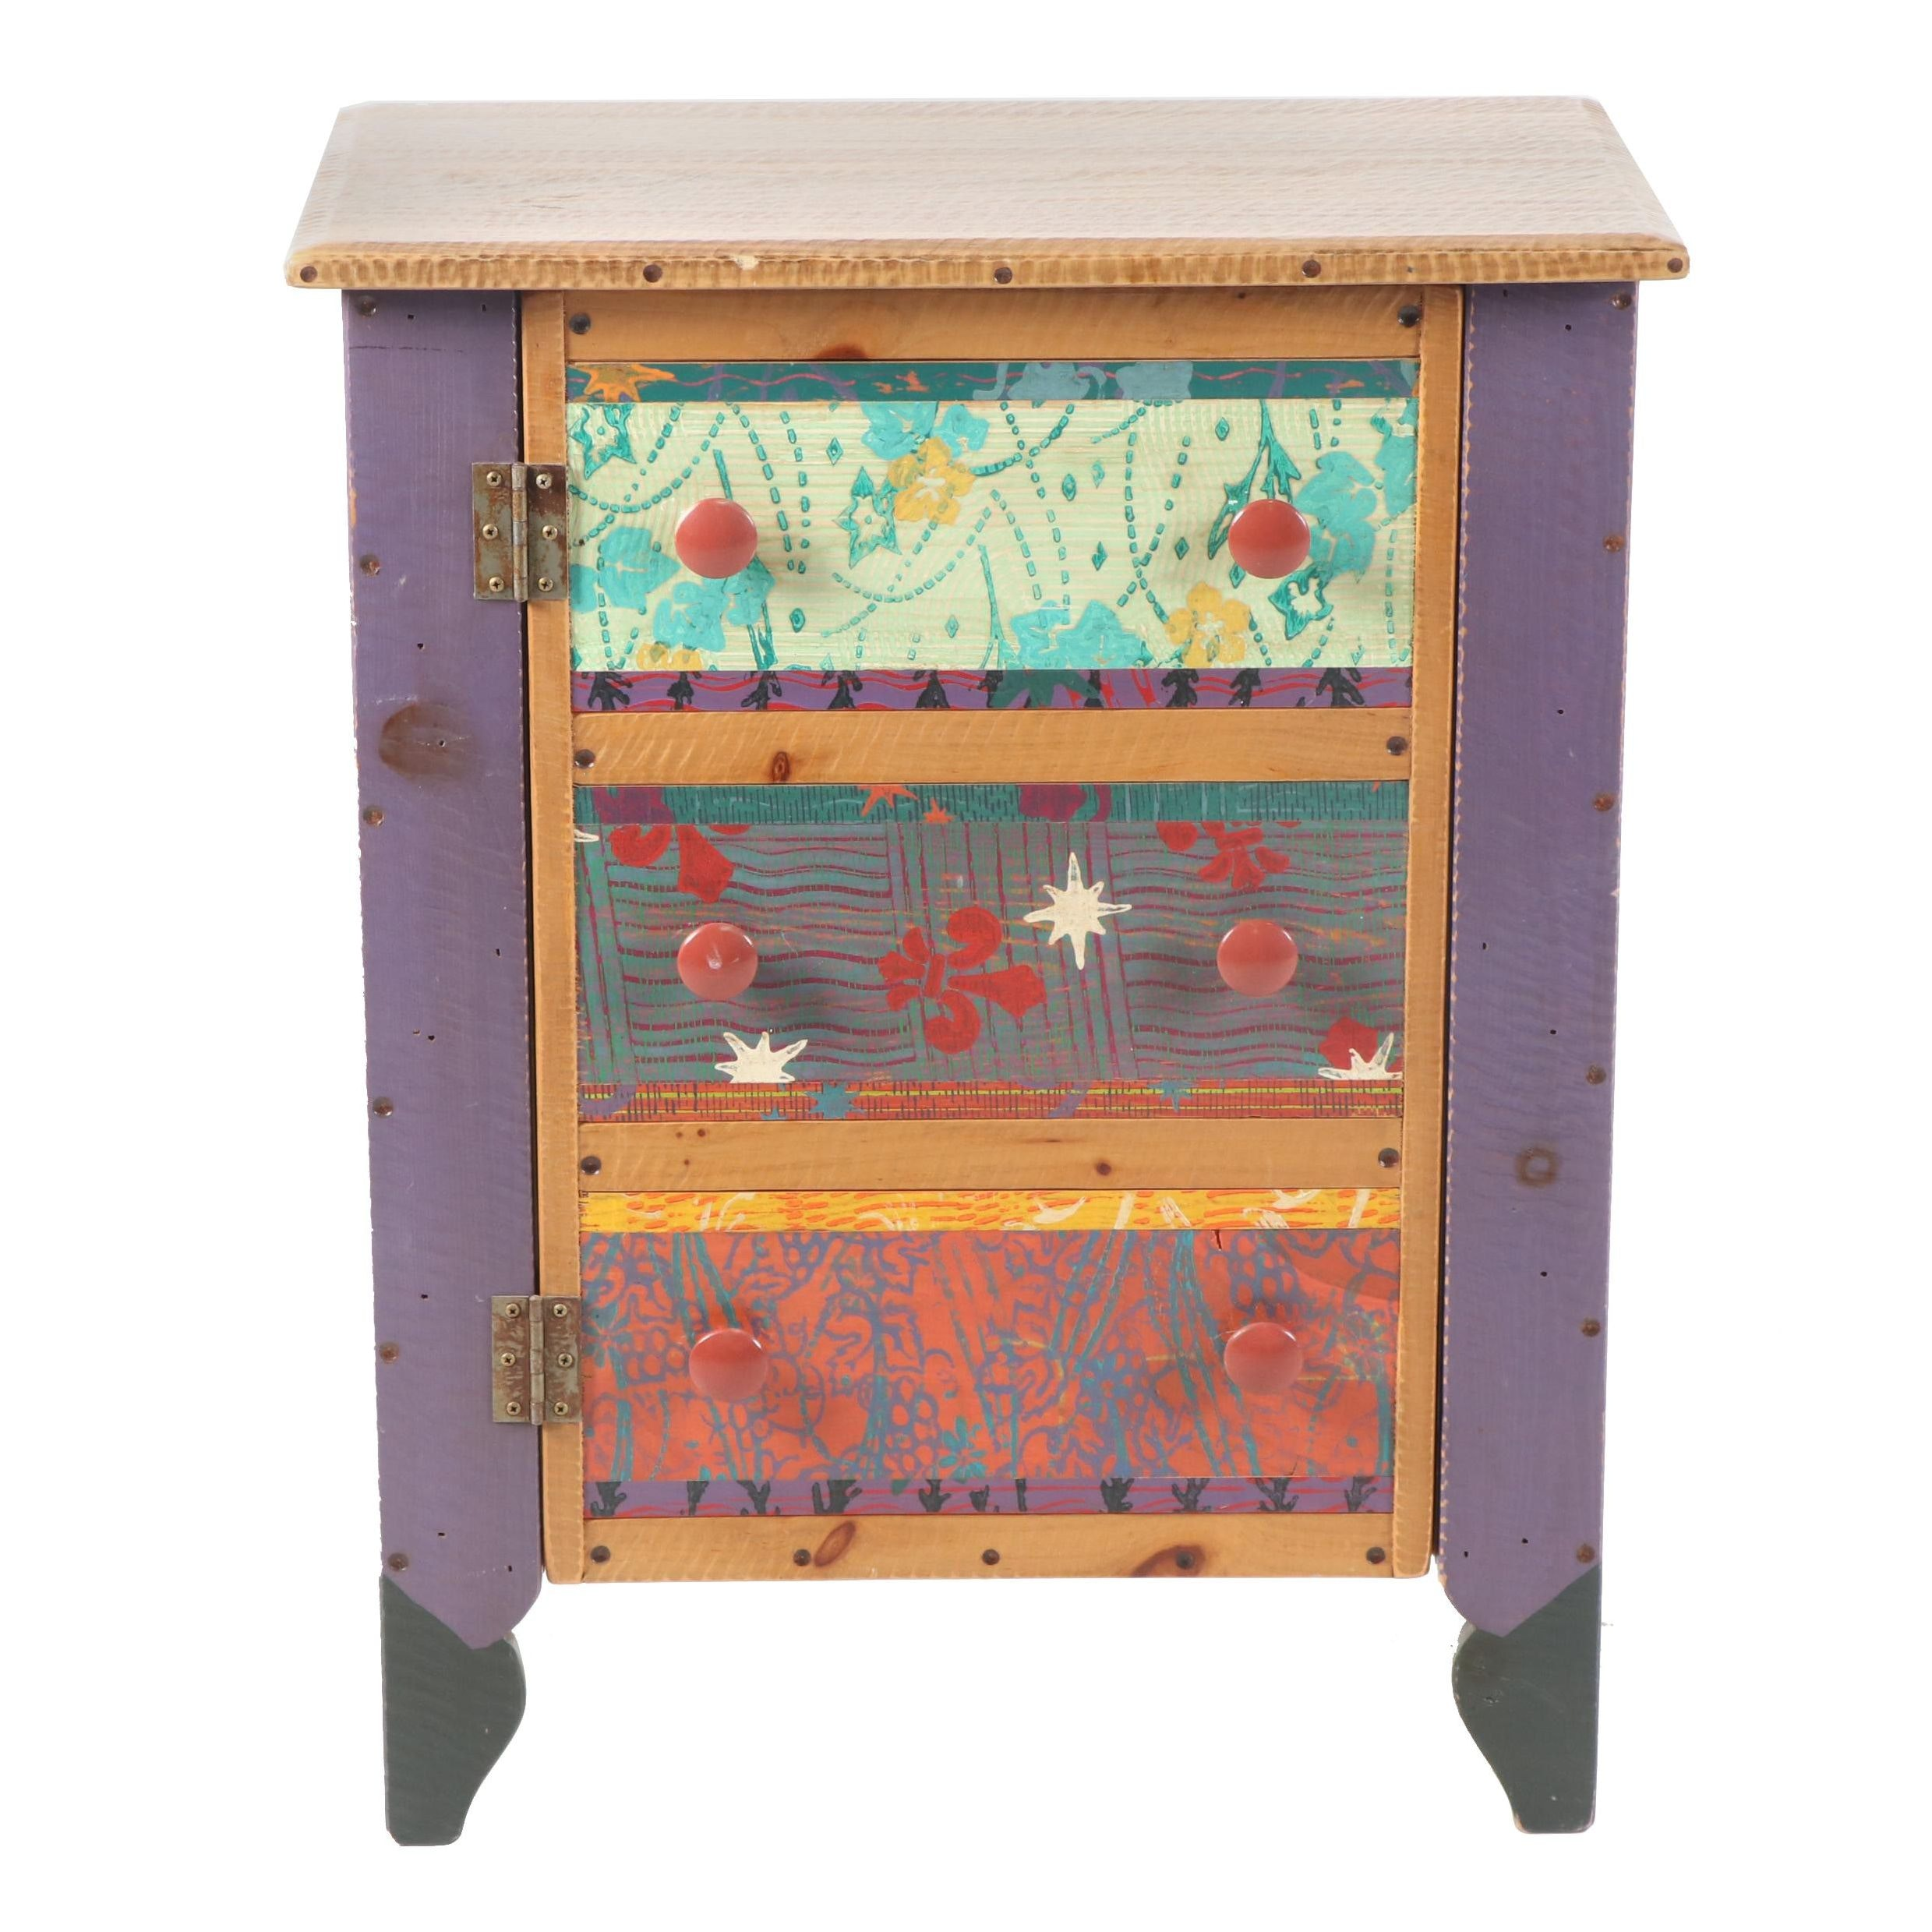 Hand-Painted Wood Nightstand Cabinet by Shoestring Creations, 21st C.